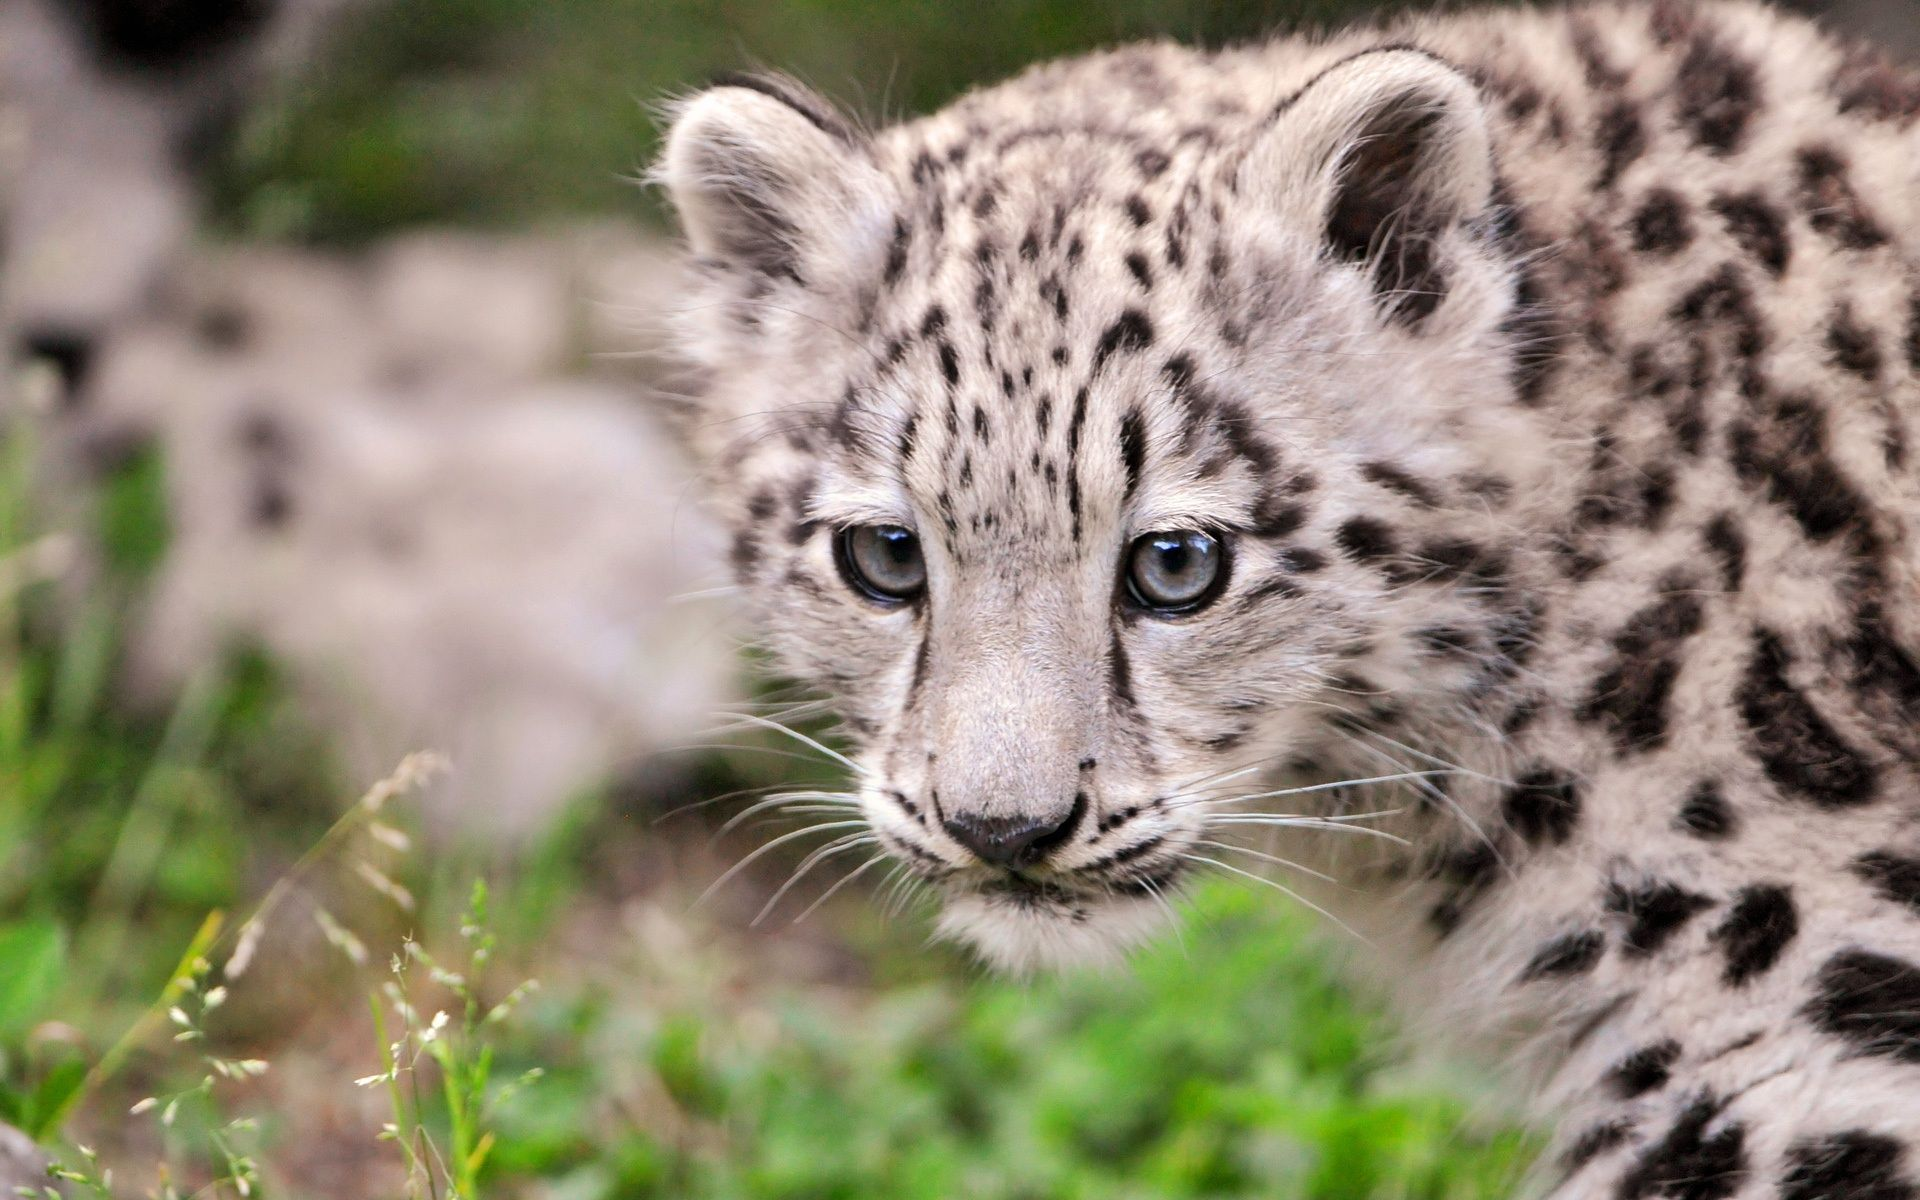 The Snow Leopard Cub Wallpaper HD Desktop